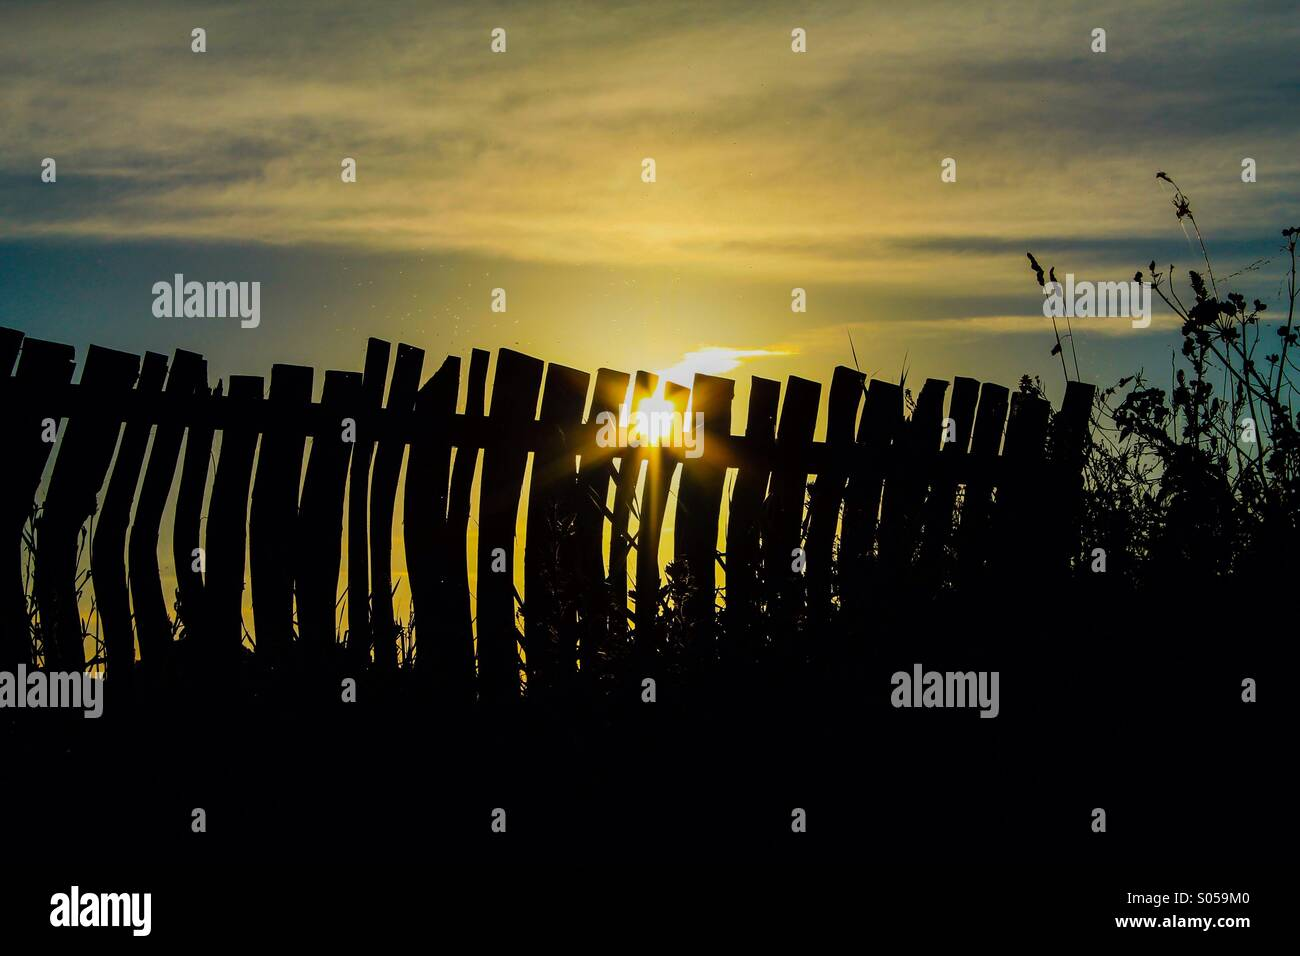 Crooked silhouetted fence - Stock Image